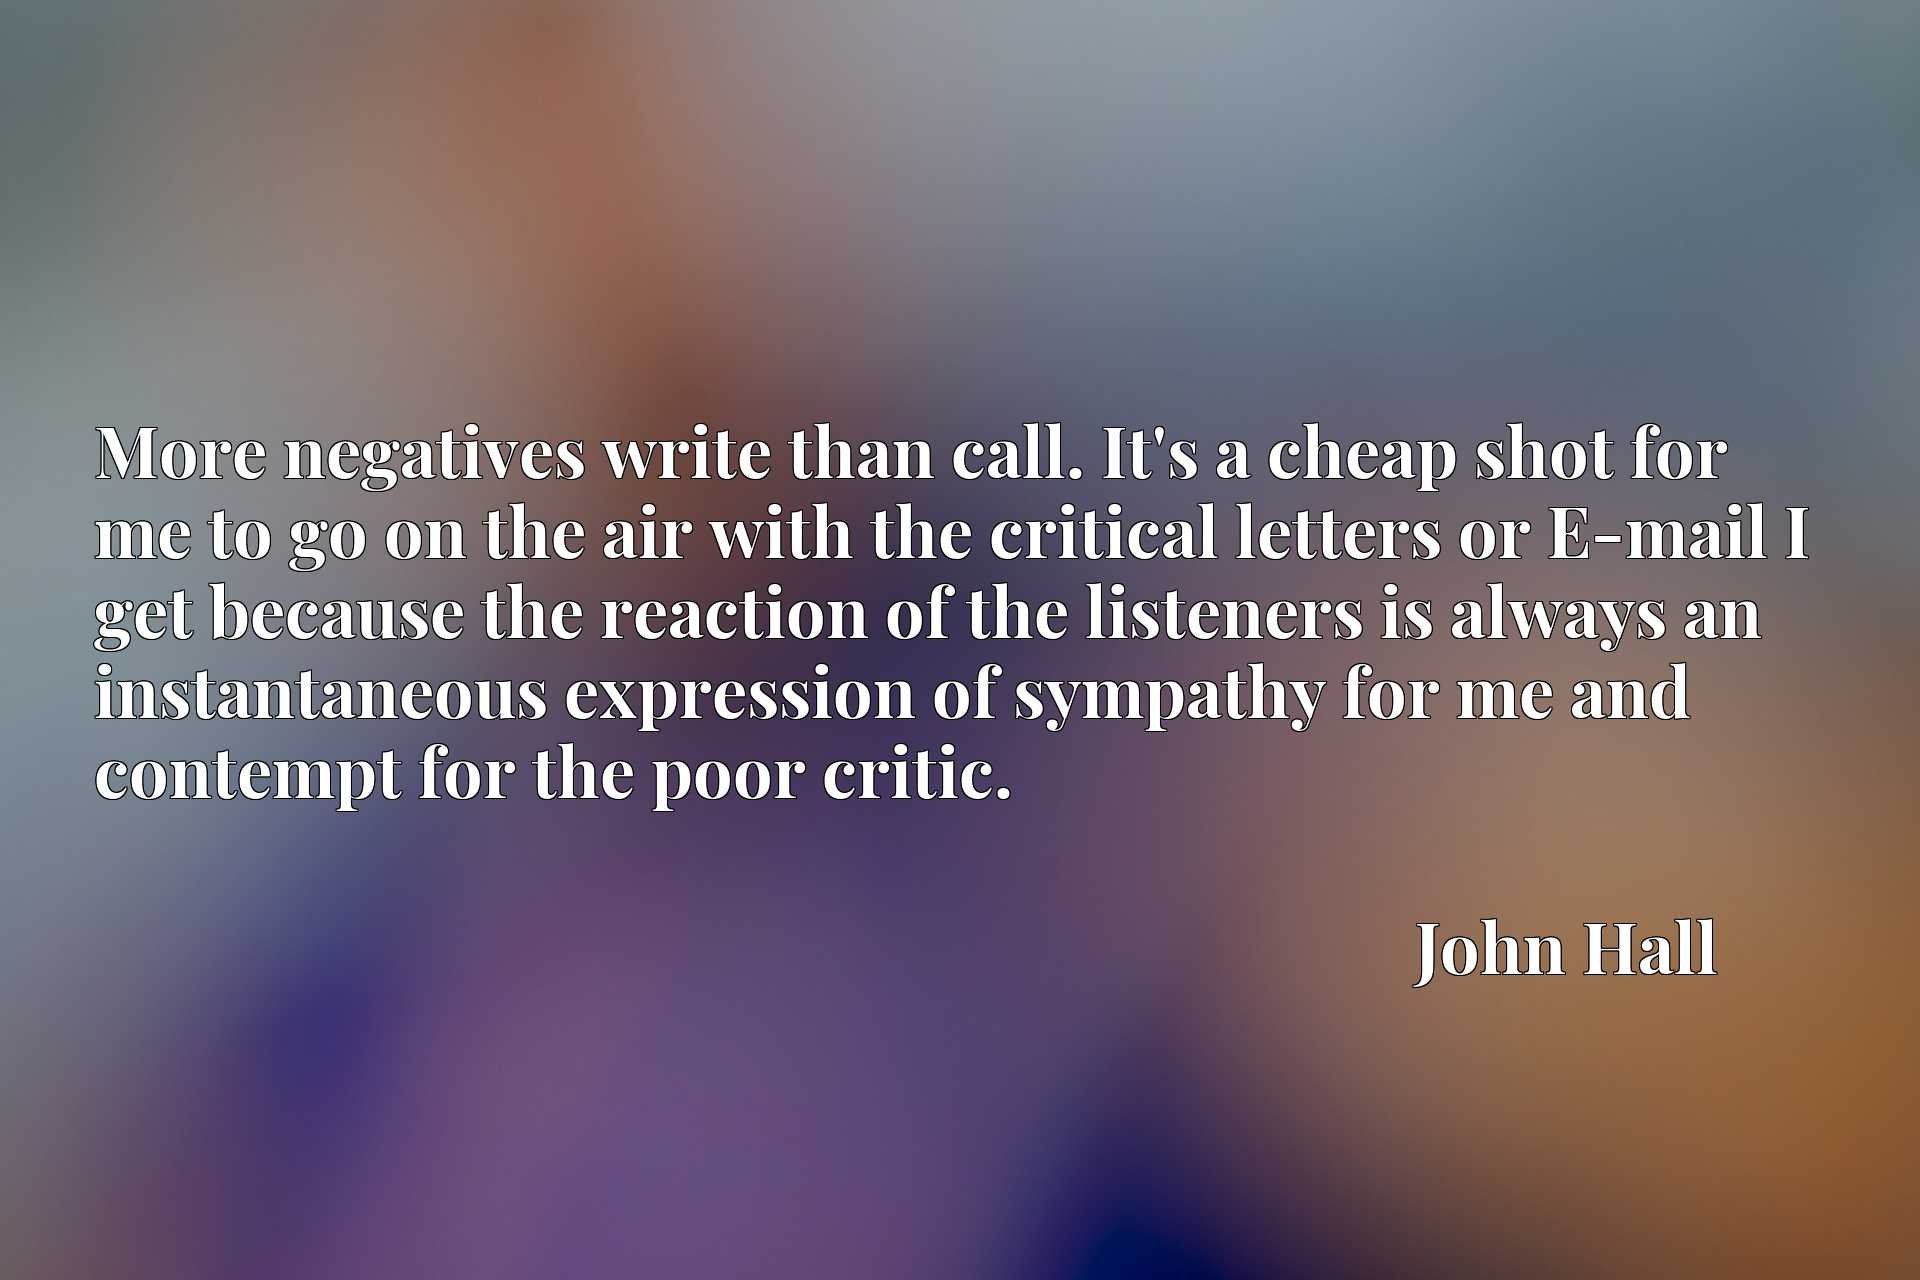 Quote Picture :More negatives write than call. It's a cheap shot for me to go on the air with the critical letters or E-mail I get because the reaction of the listeners is always an instantaneous expression of sympathy for me and contempt for the poor critic.